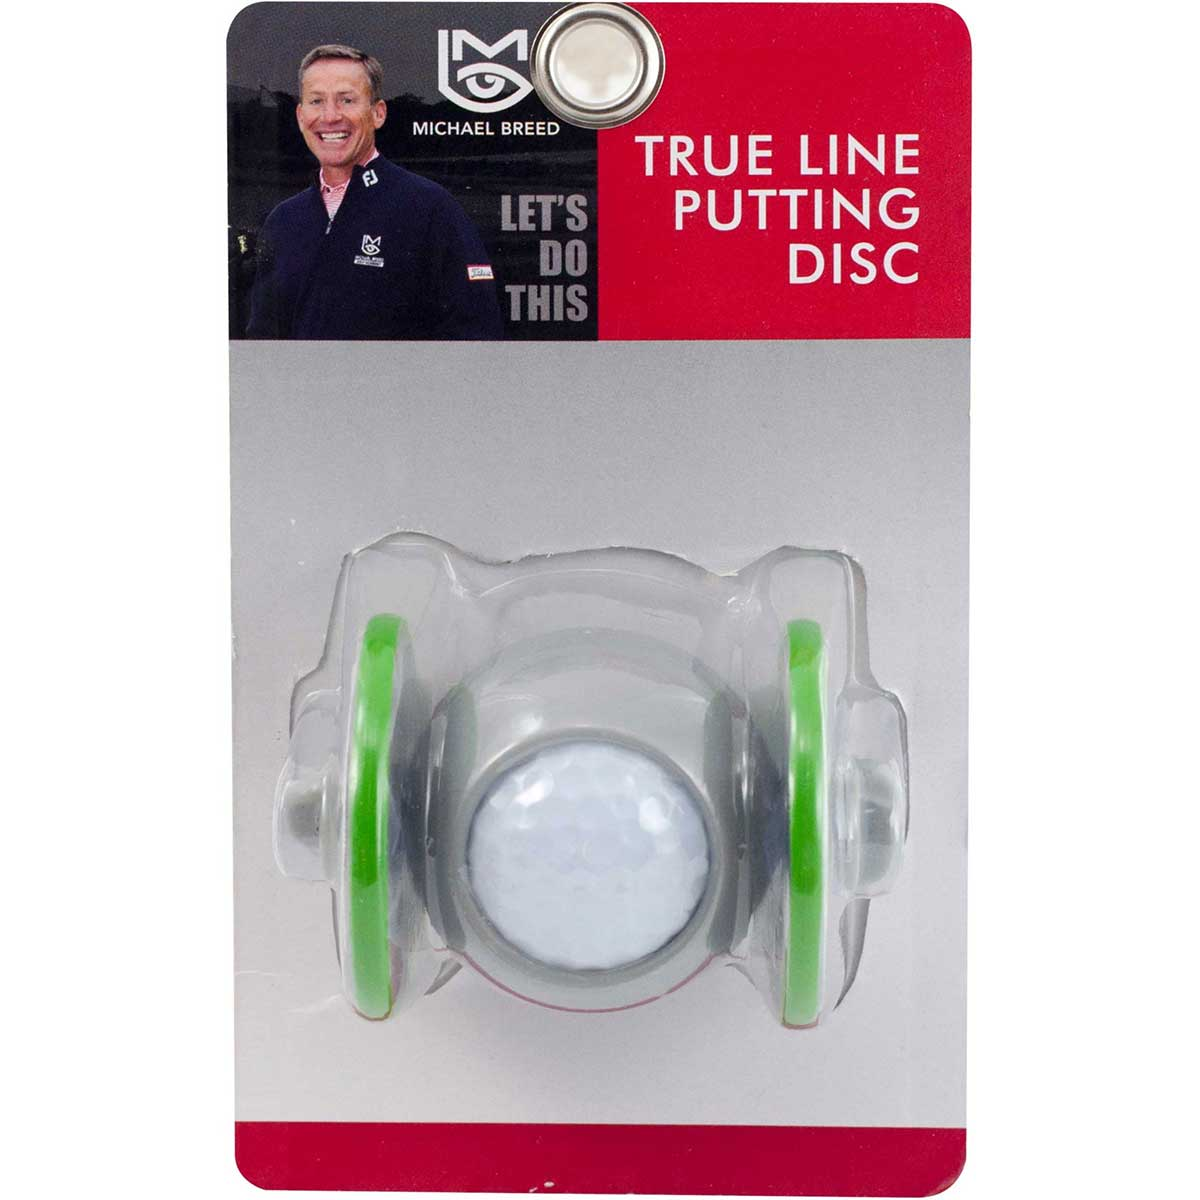 Michael Breed's True Line Putting Disc